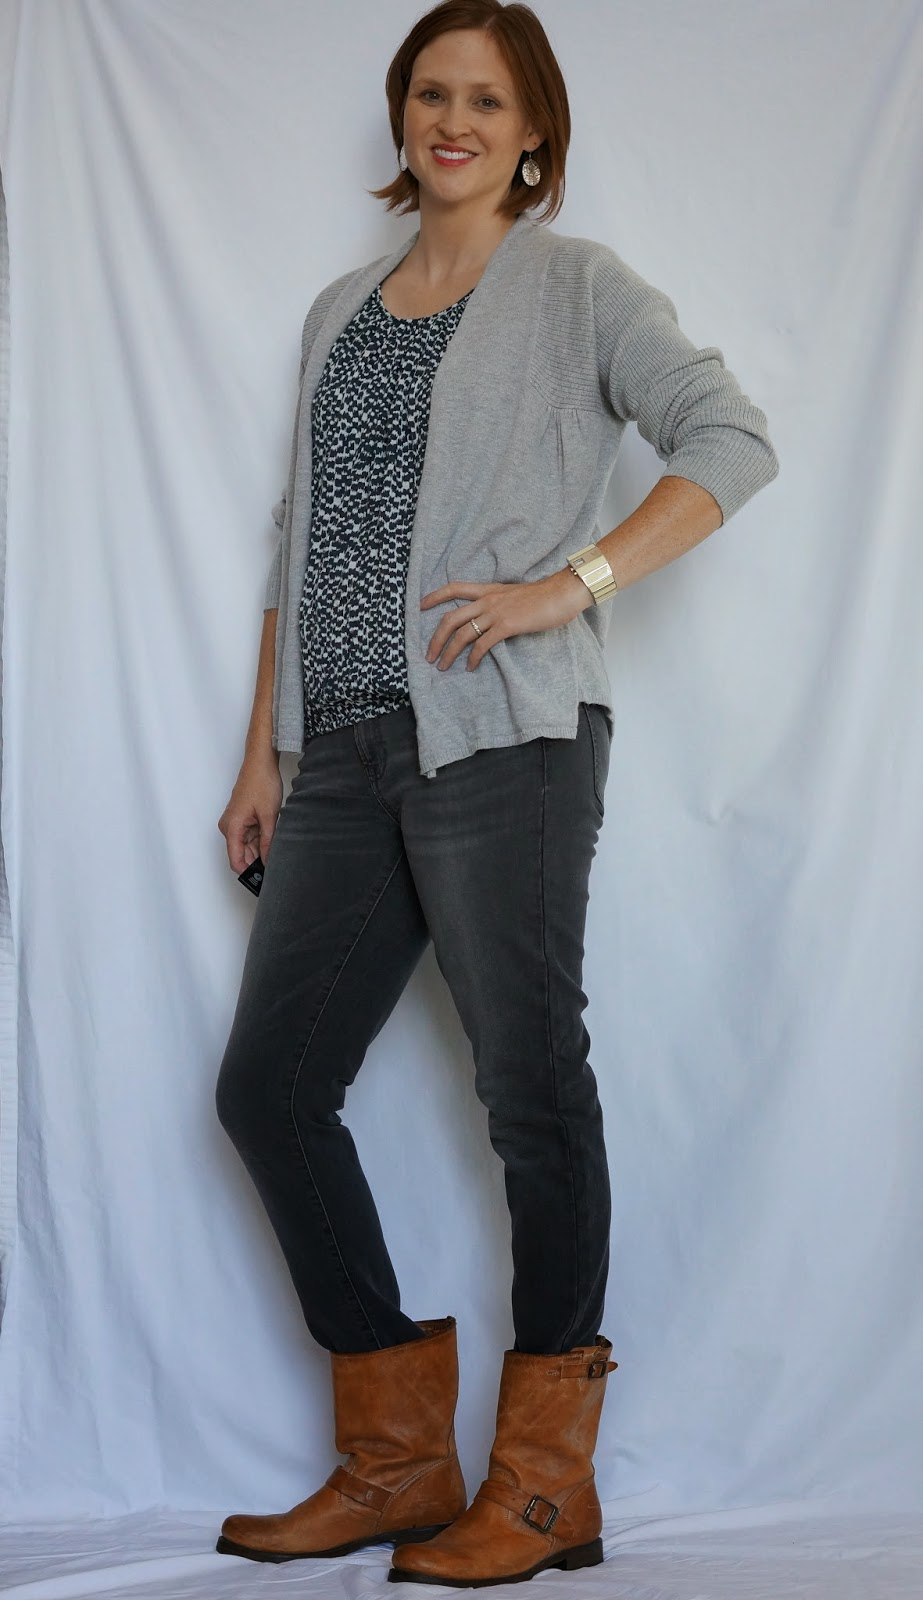 My Capsule Wardrobe: Outfit 22/91: Puffy Shirt, Grey Cardigan ...